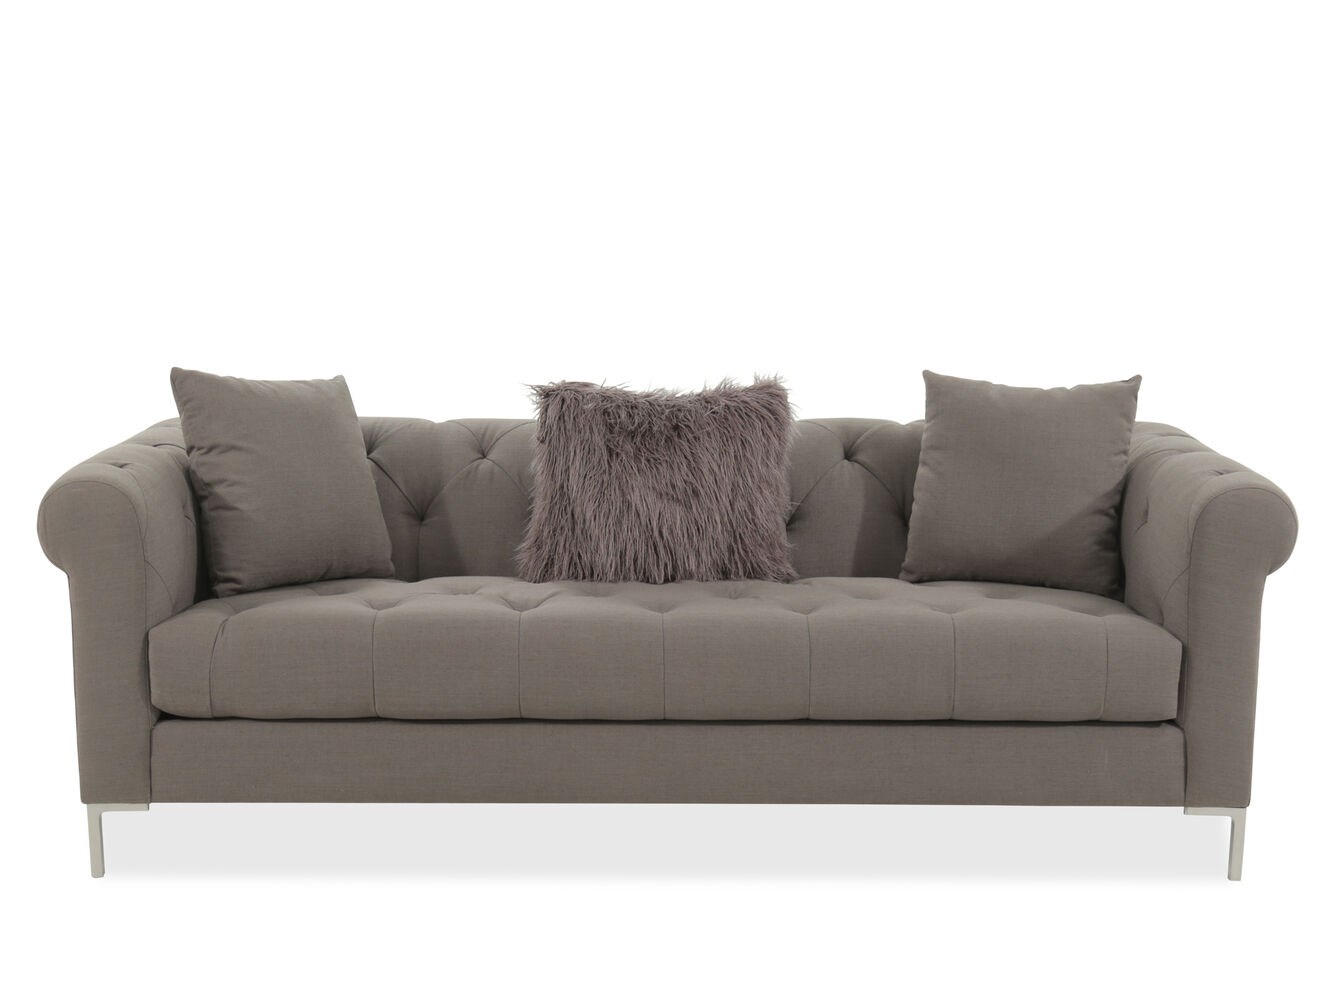 Transitional tufted 40 sofa in gray mathis brothers furniture for Mathis brothers living room furniture